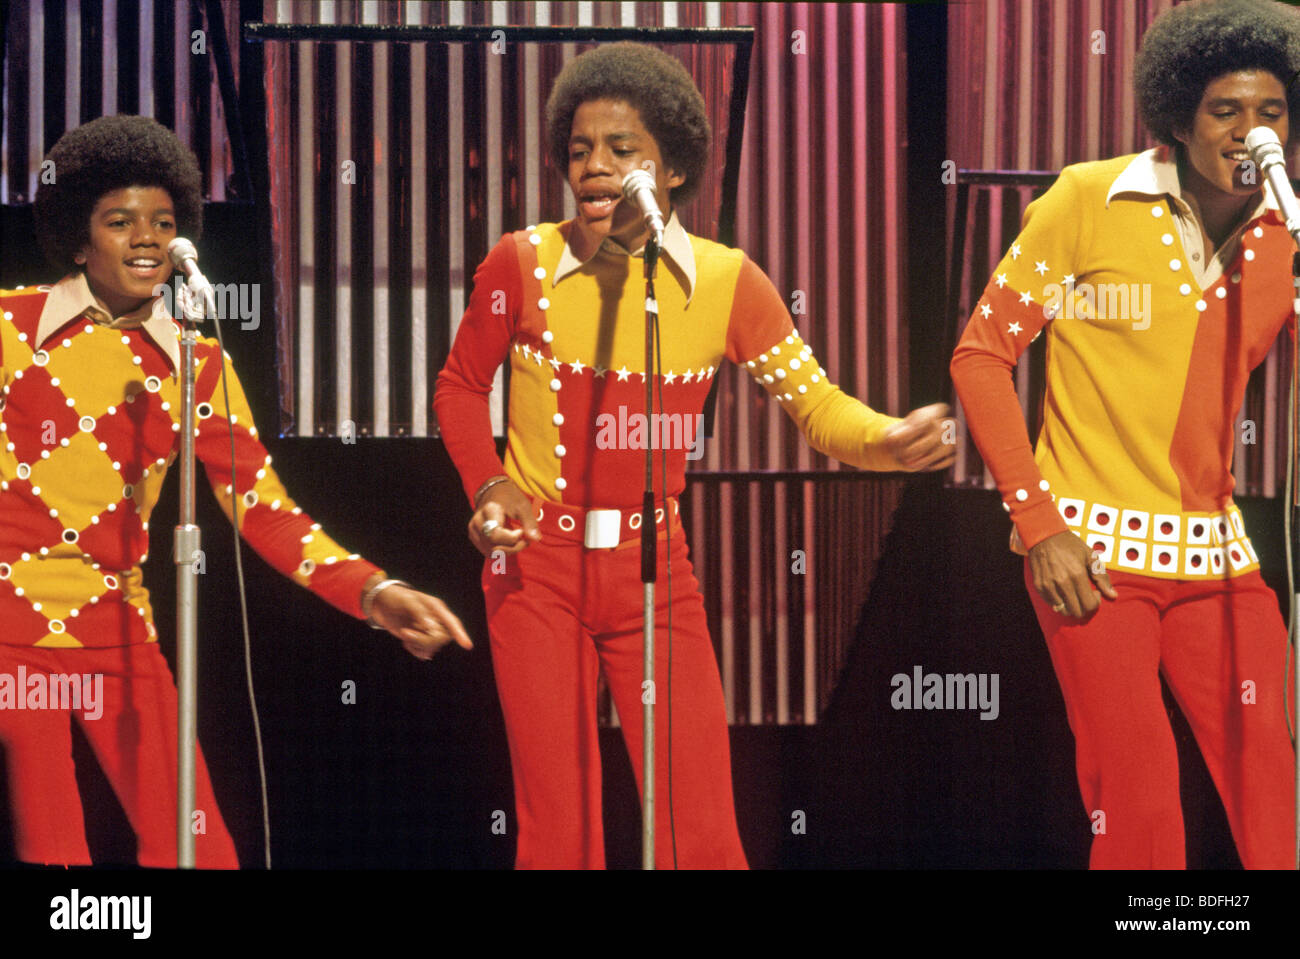 MICHAEL JACKSON at left with the Jackson Five - Stock Image